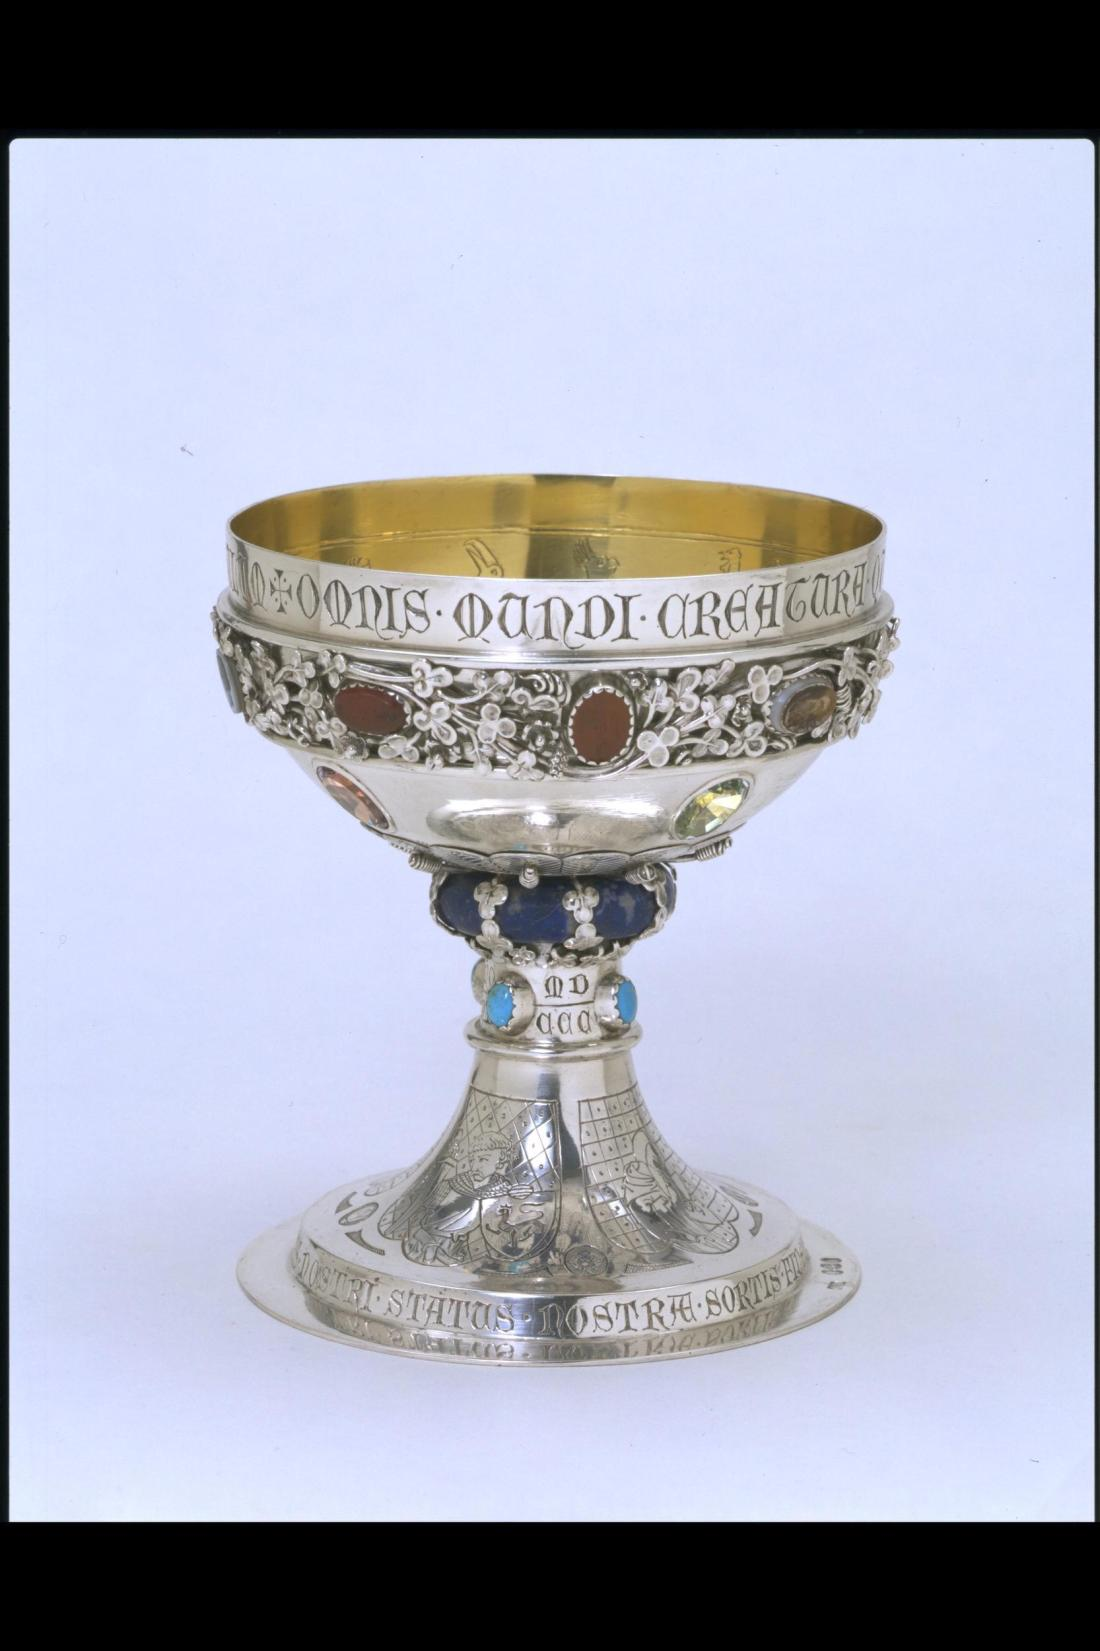 Cup. 1863-64. Silver and parcel-gilt set with applied ornament and enameled.